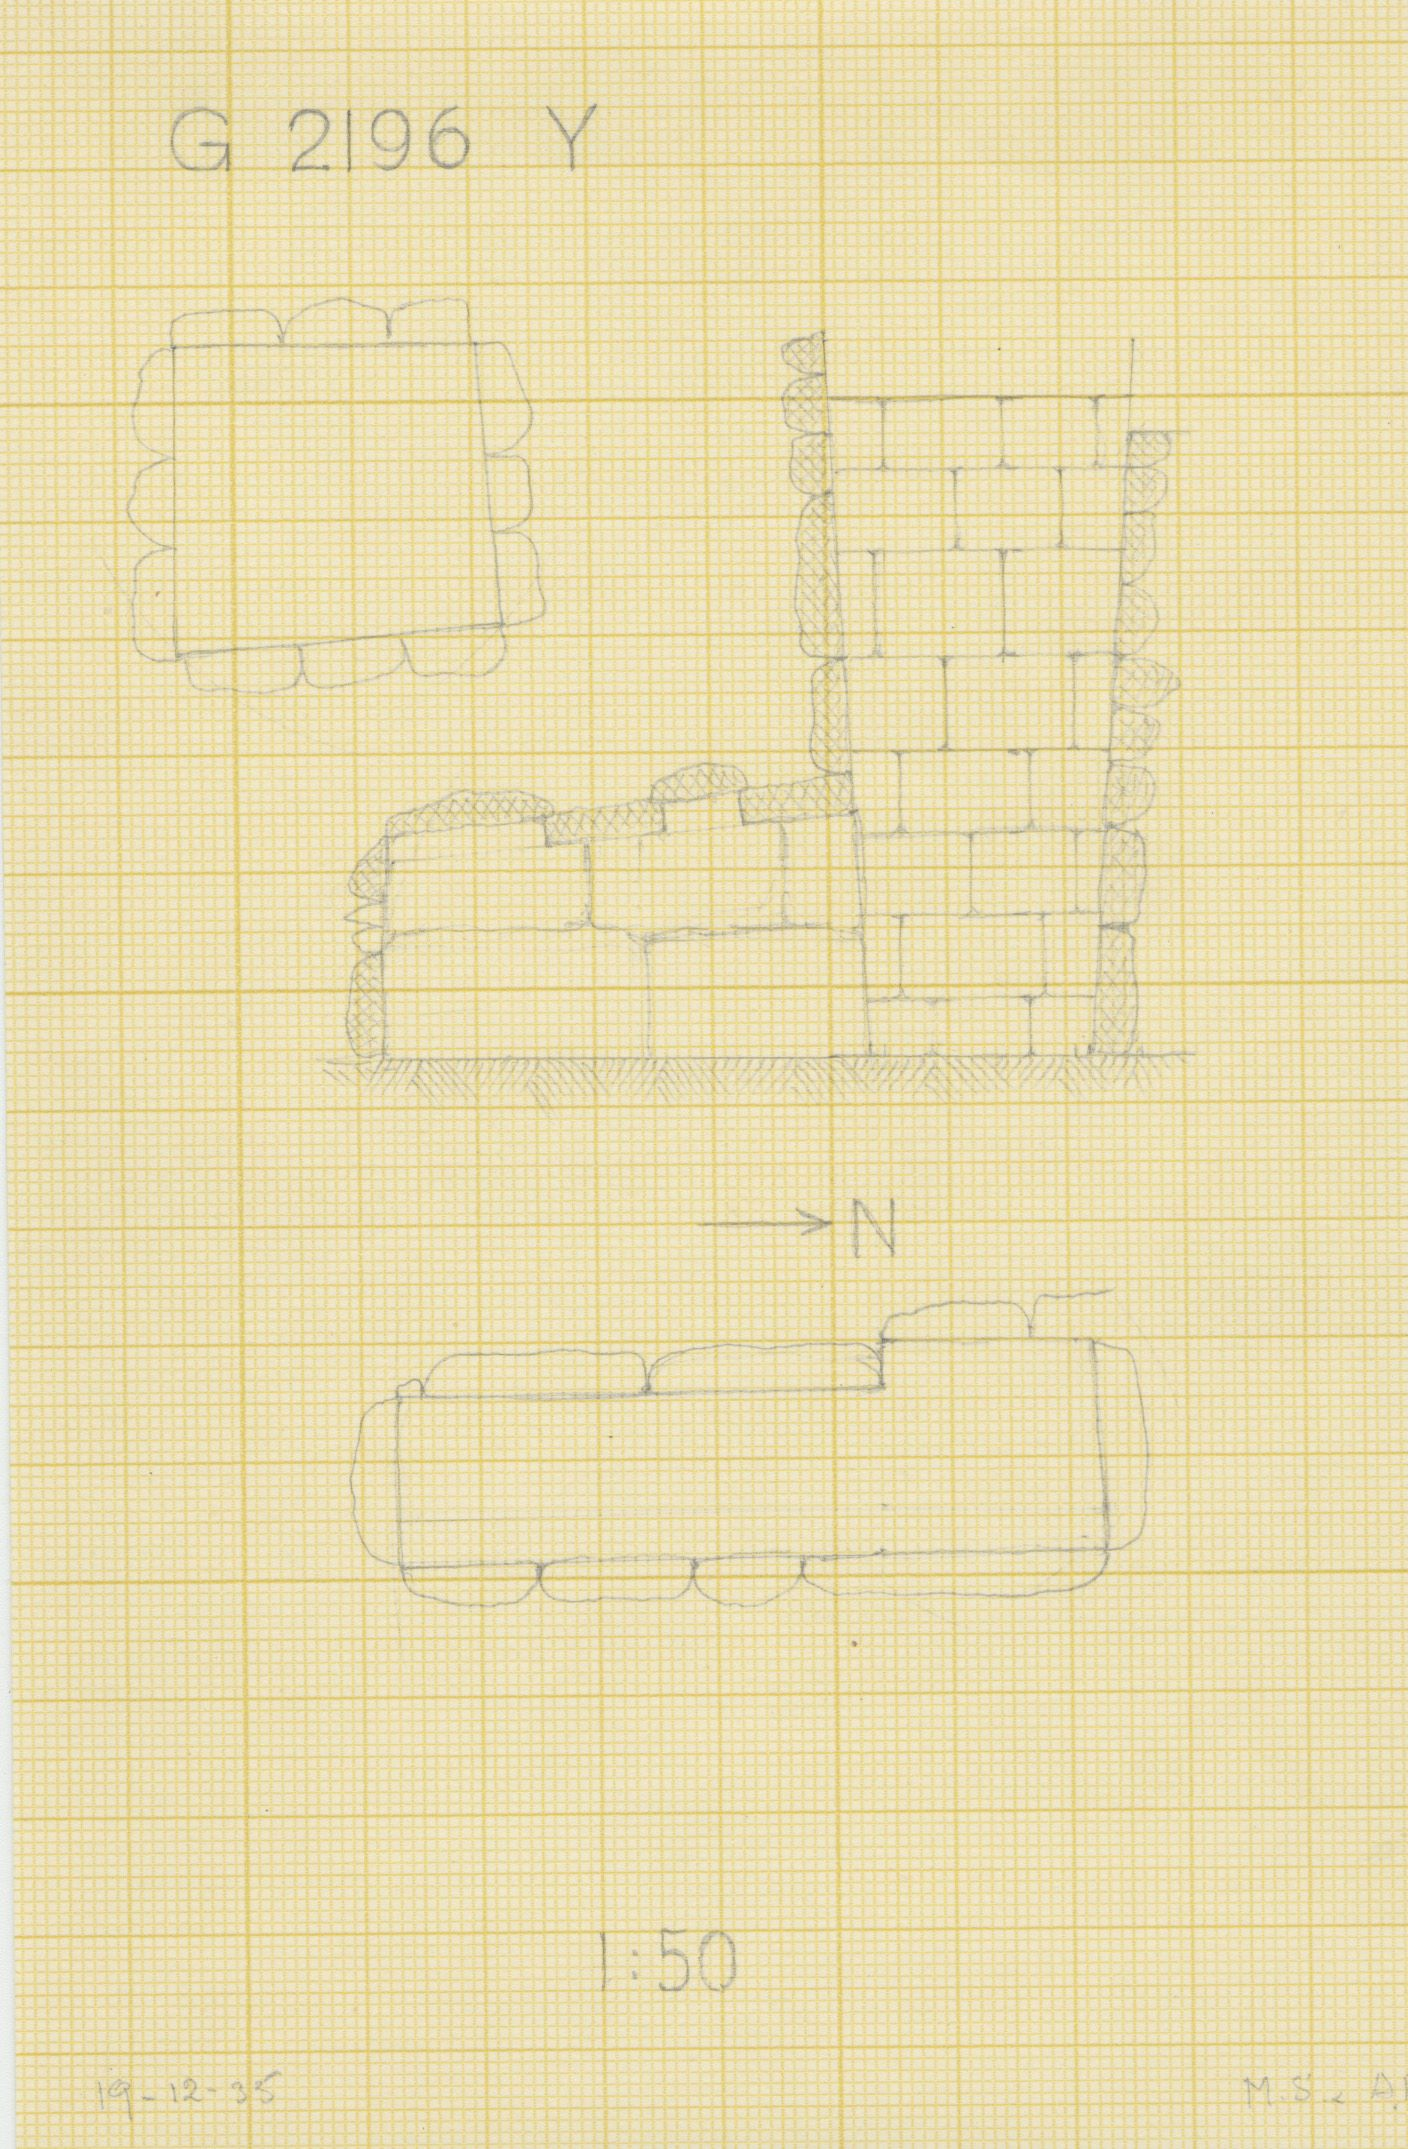 Maps and plans: G 2196, Shaft Y